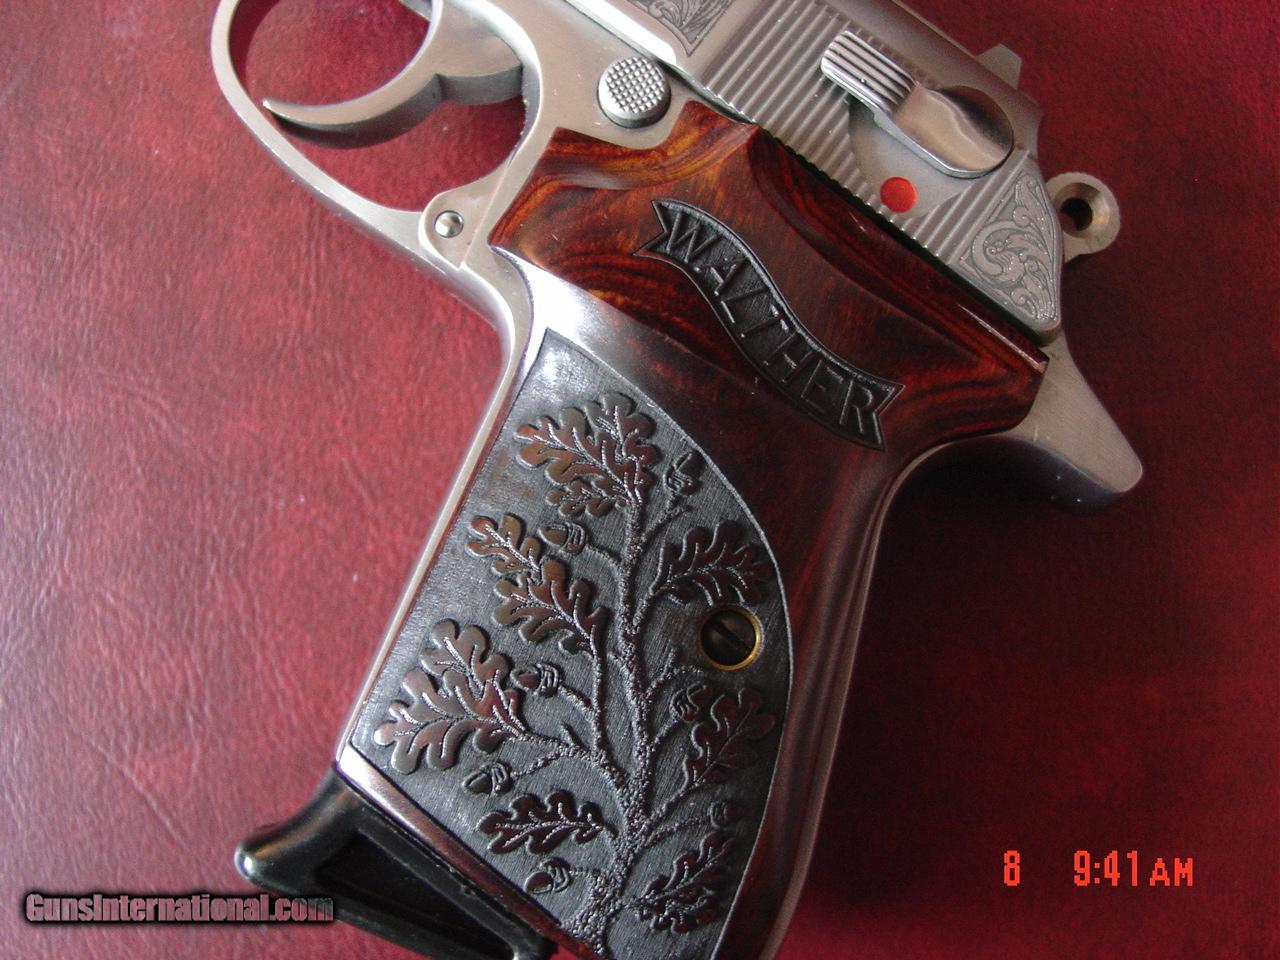 ... Walther PPK/S, 1 of 400 Premier,380,Engraved with Gold eagle ...